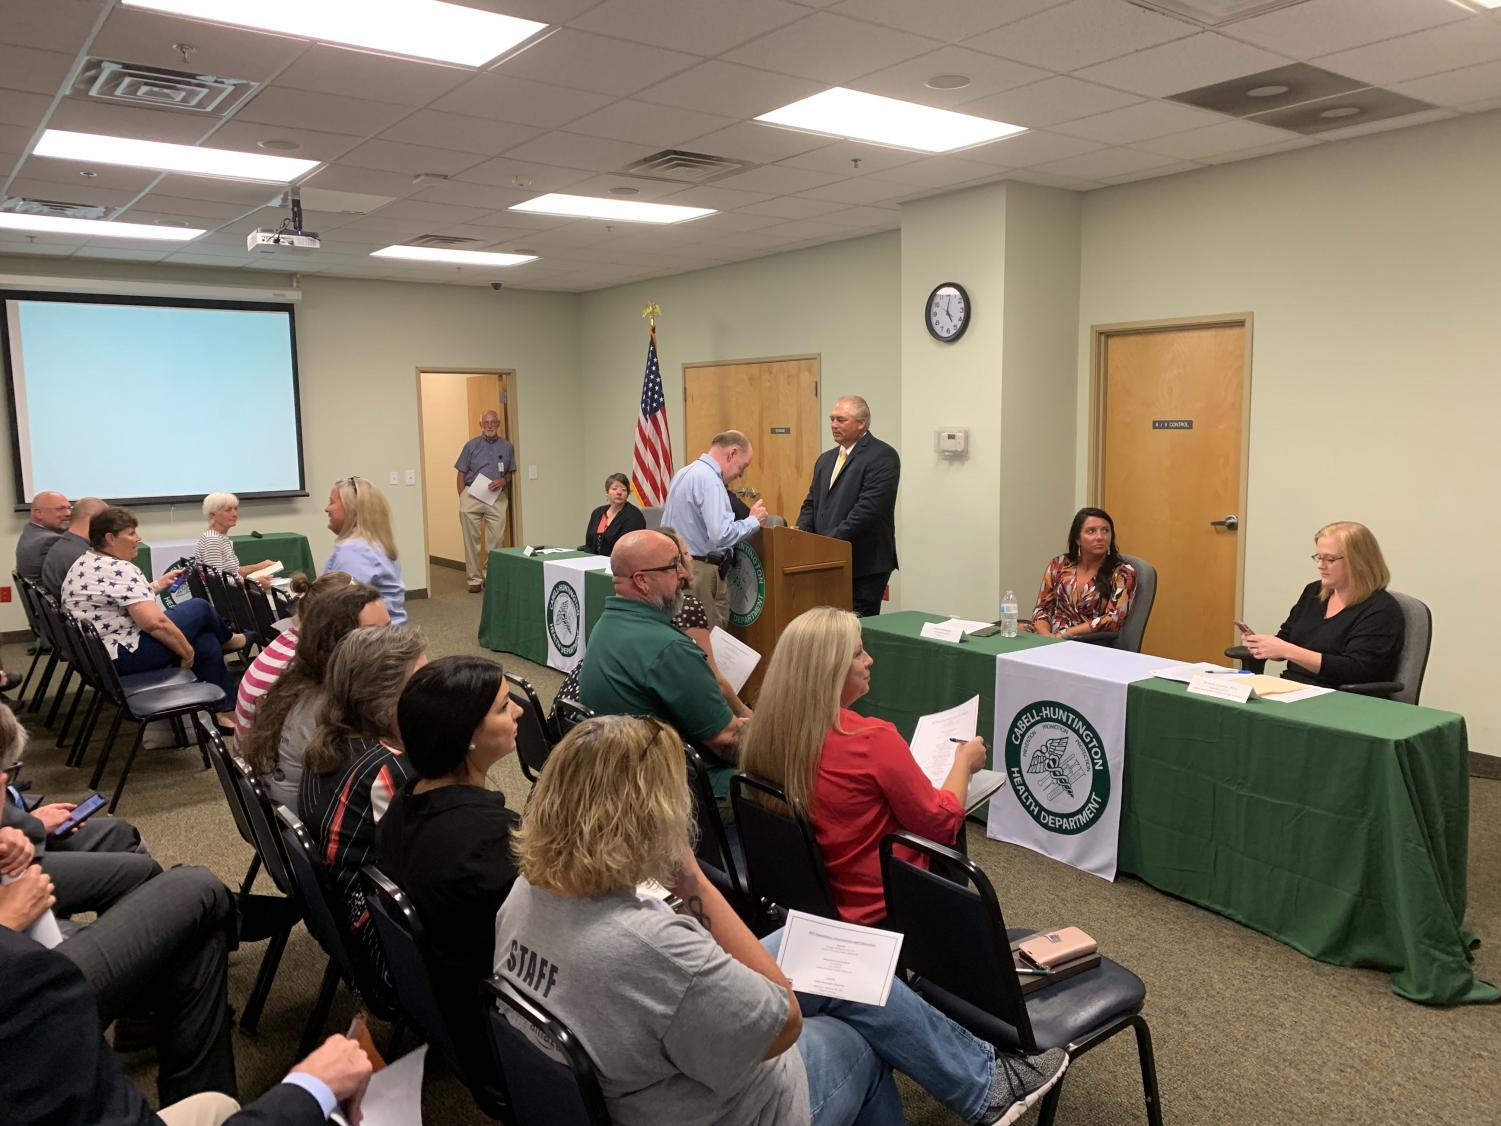 Huntington Community Discusses Hiv Cluster Harm Reduction Programs During Public Meeting The